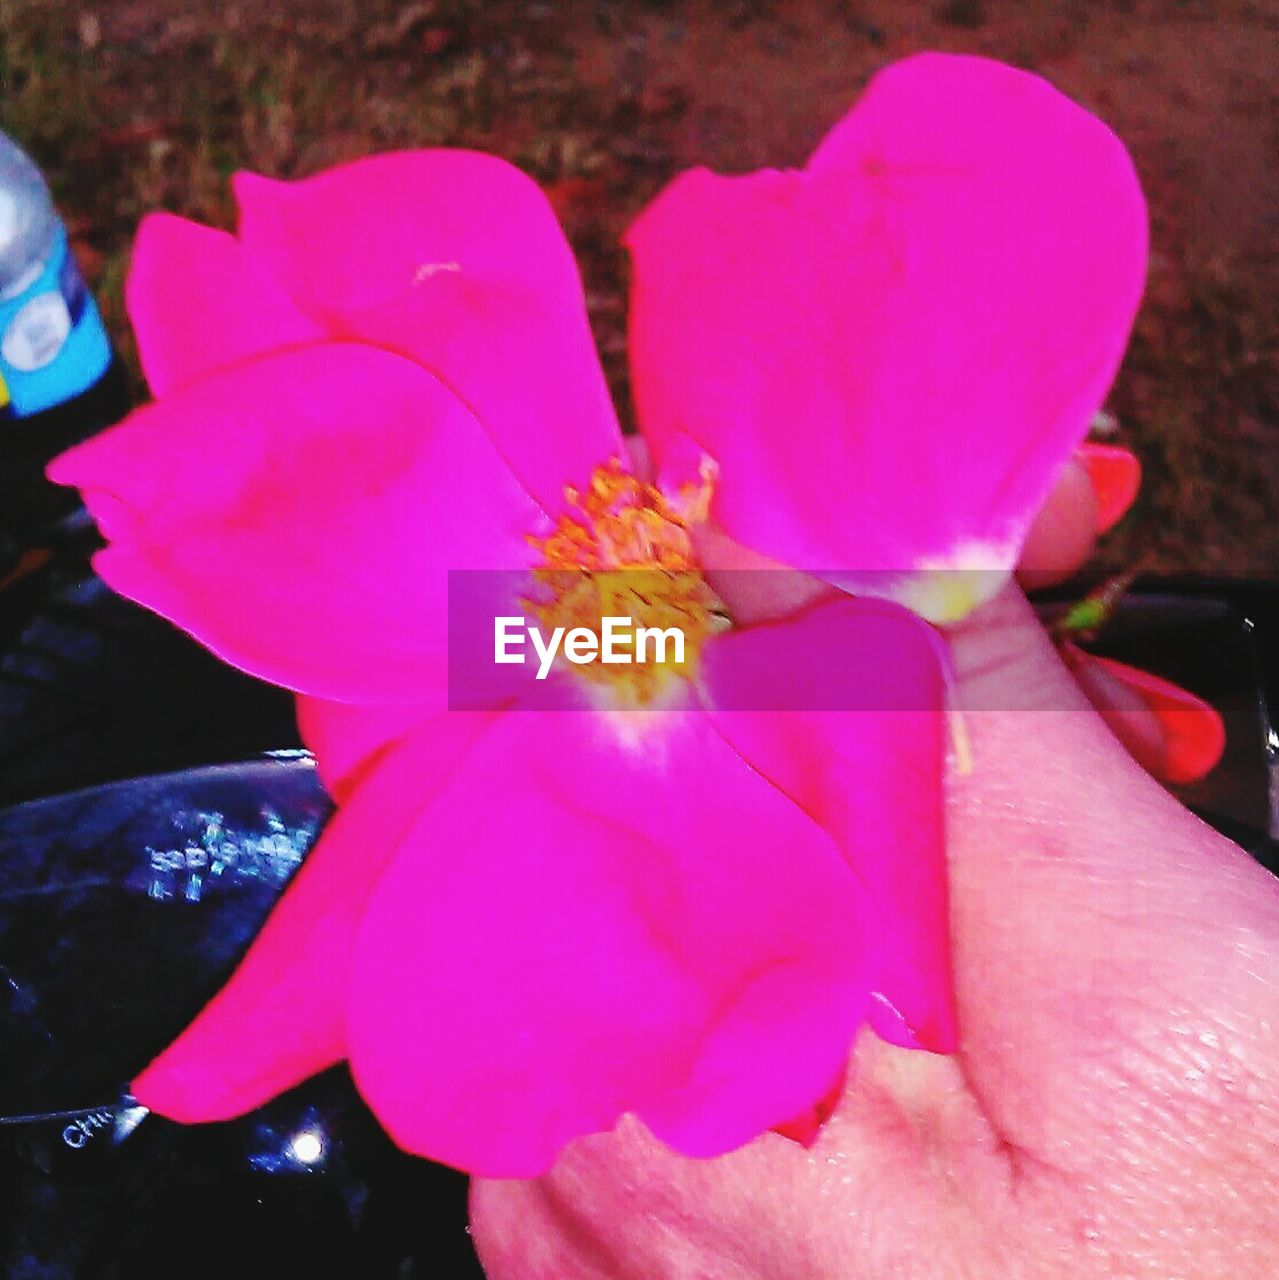 flower, petal, human hand, real people, fragility, beauty in nature, human body part, nature, close-up, flower head, pink color, one person, outdoors, freshness, day, blooming, people